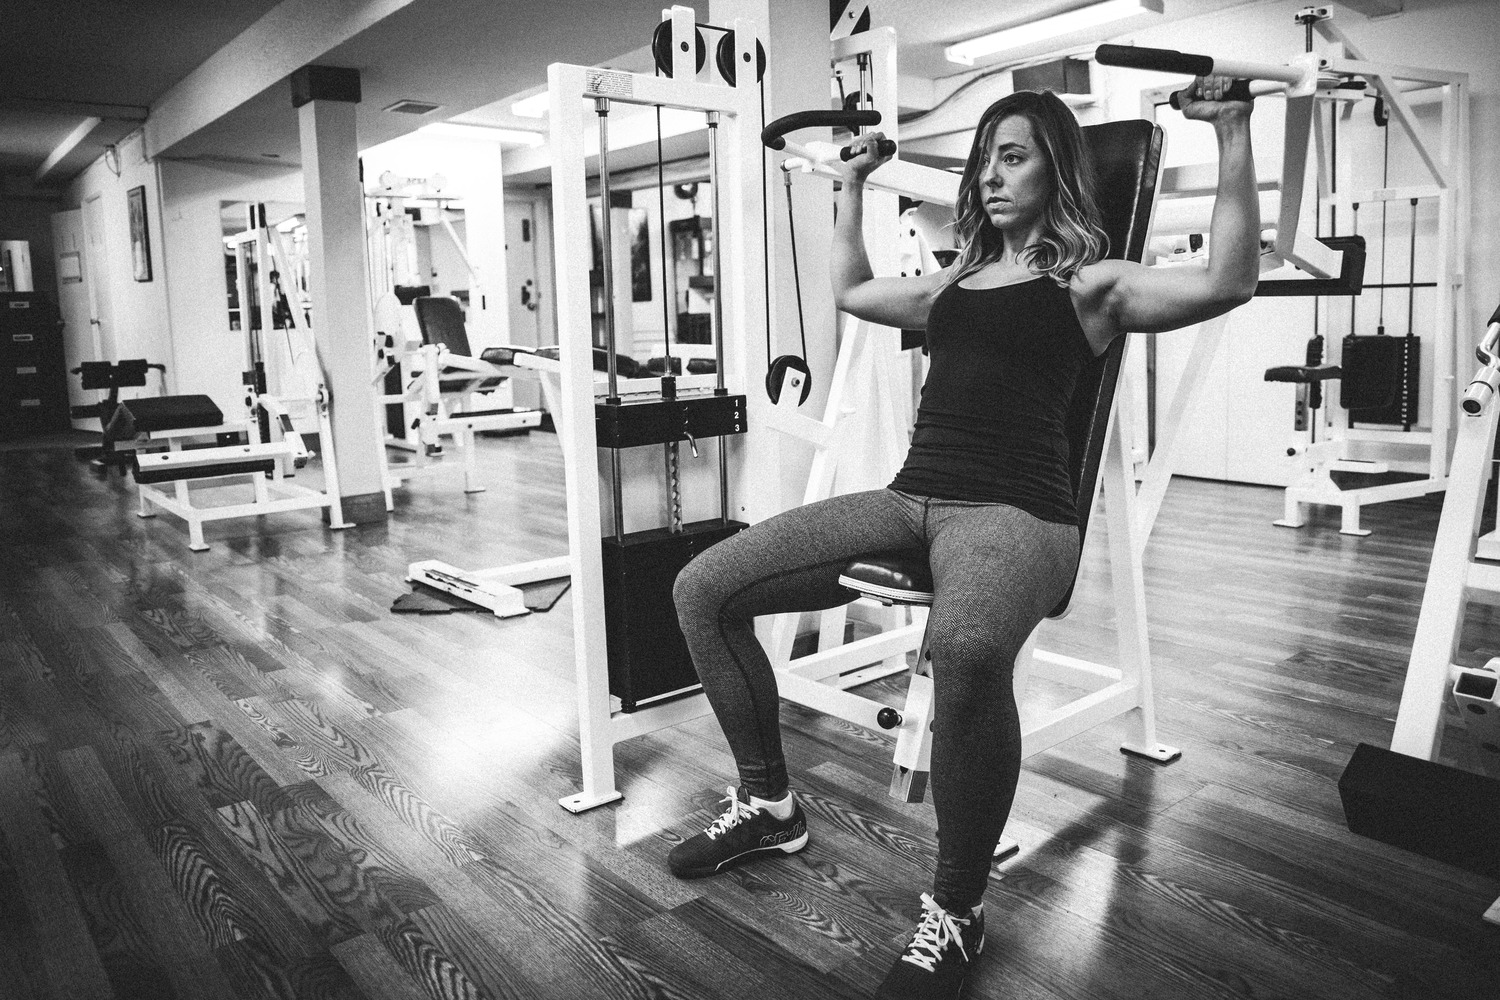 Personal Training Services For Groups Individuals Whistler Creek